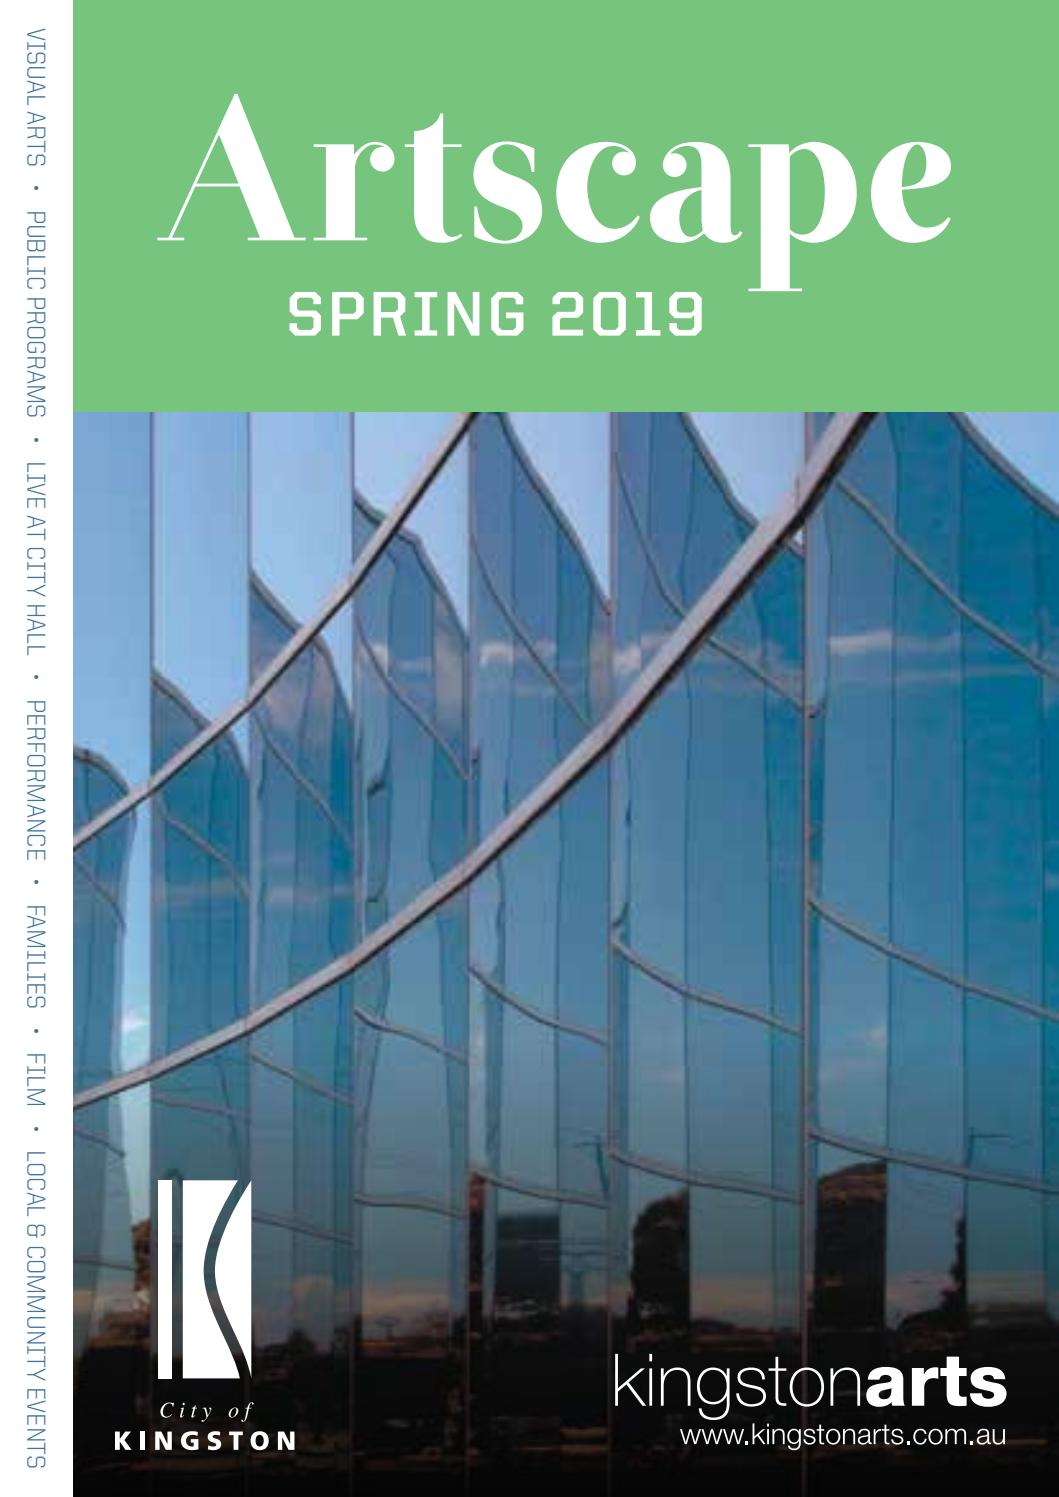 Kingston Artscape Spring 2019 by City of Kingston issuu